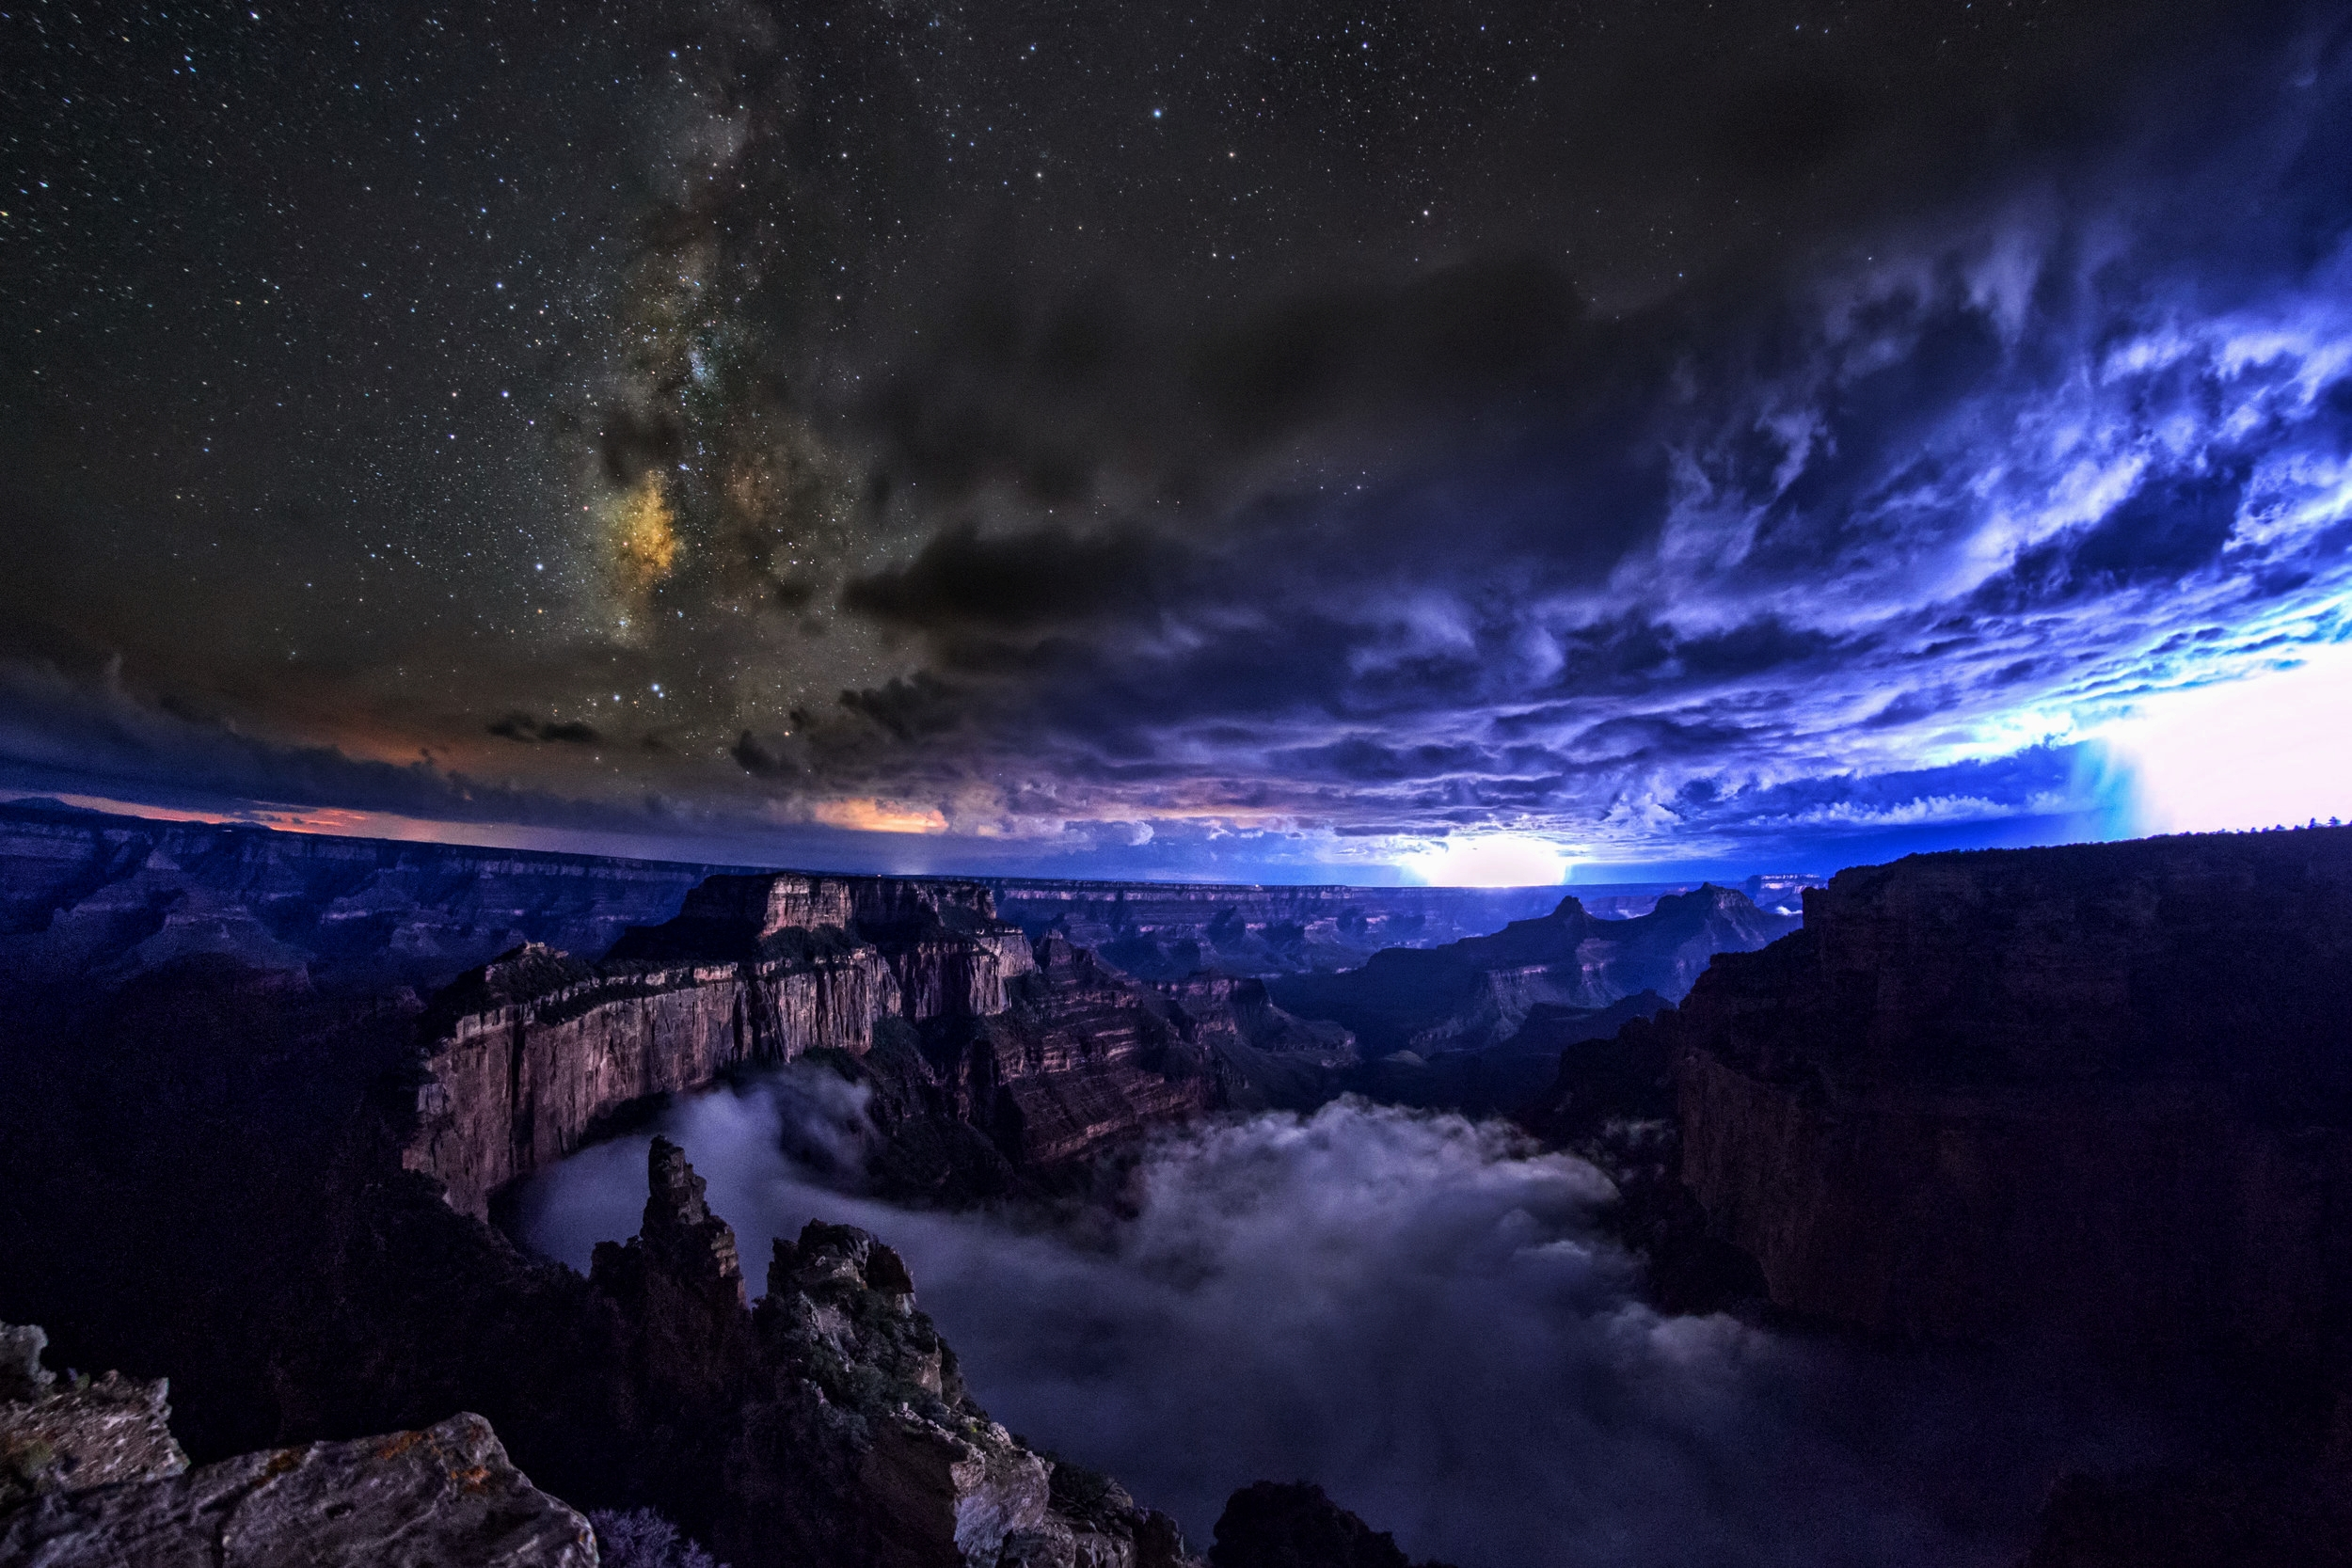 Monsoon season thunderstorms over Grand Canyon, Arizona